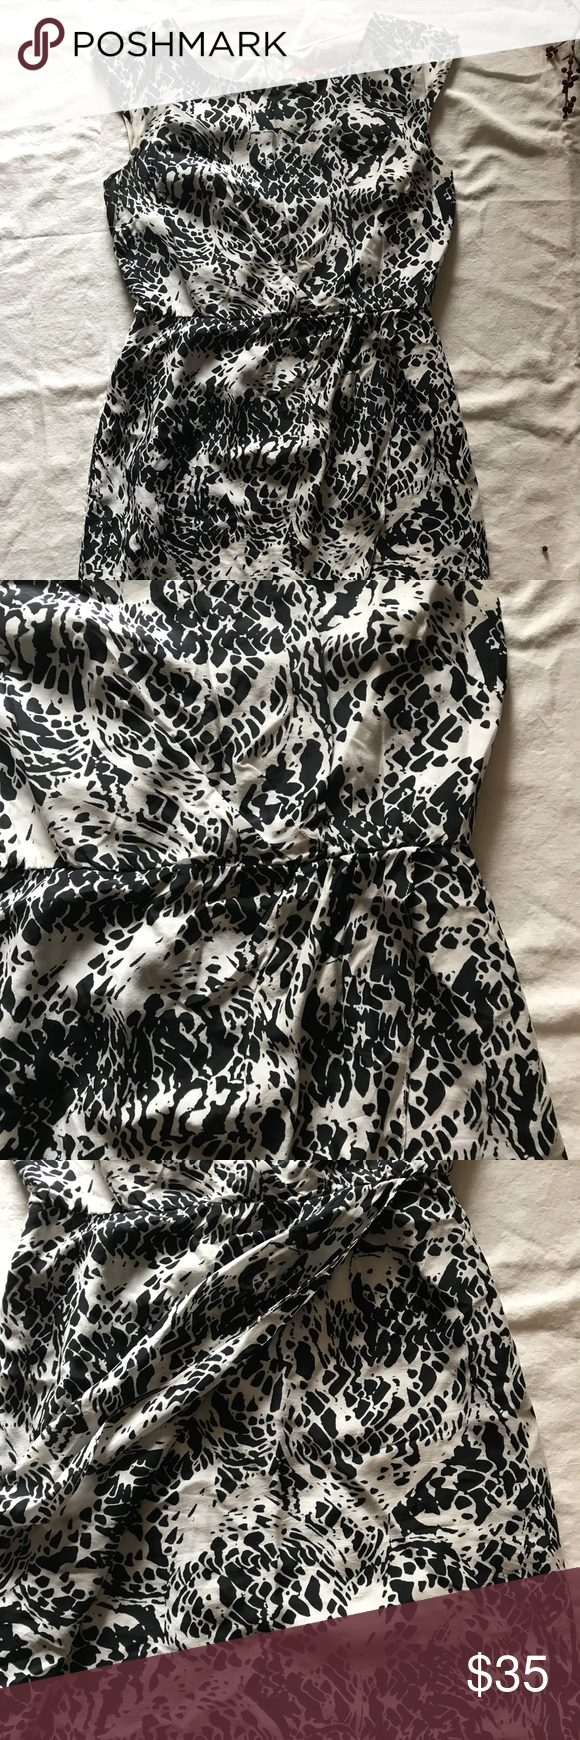 Cynthia Steffens silk Black and white dress Cynthia Cynthia Steffens little faux wrap dress. Scoop neck back split. Size 2 Cynthia Steffe Dresses